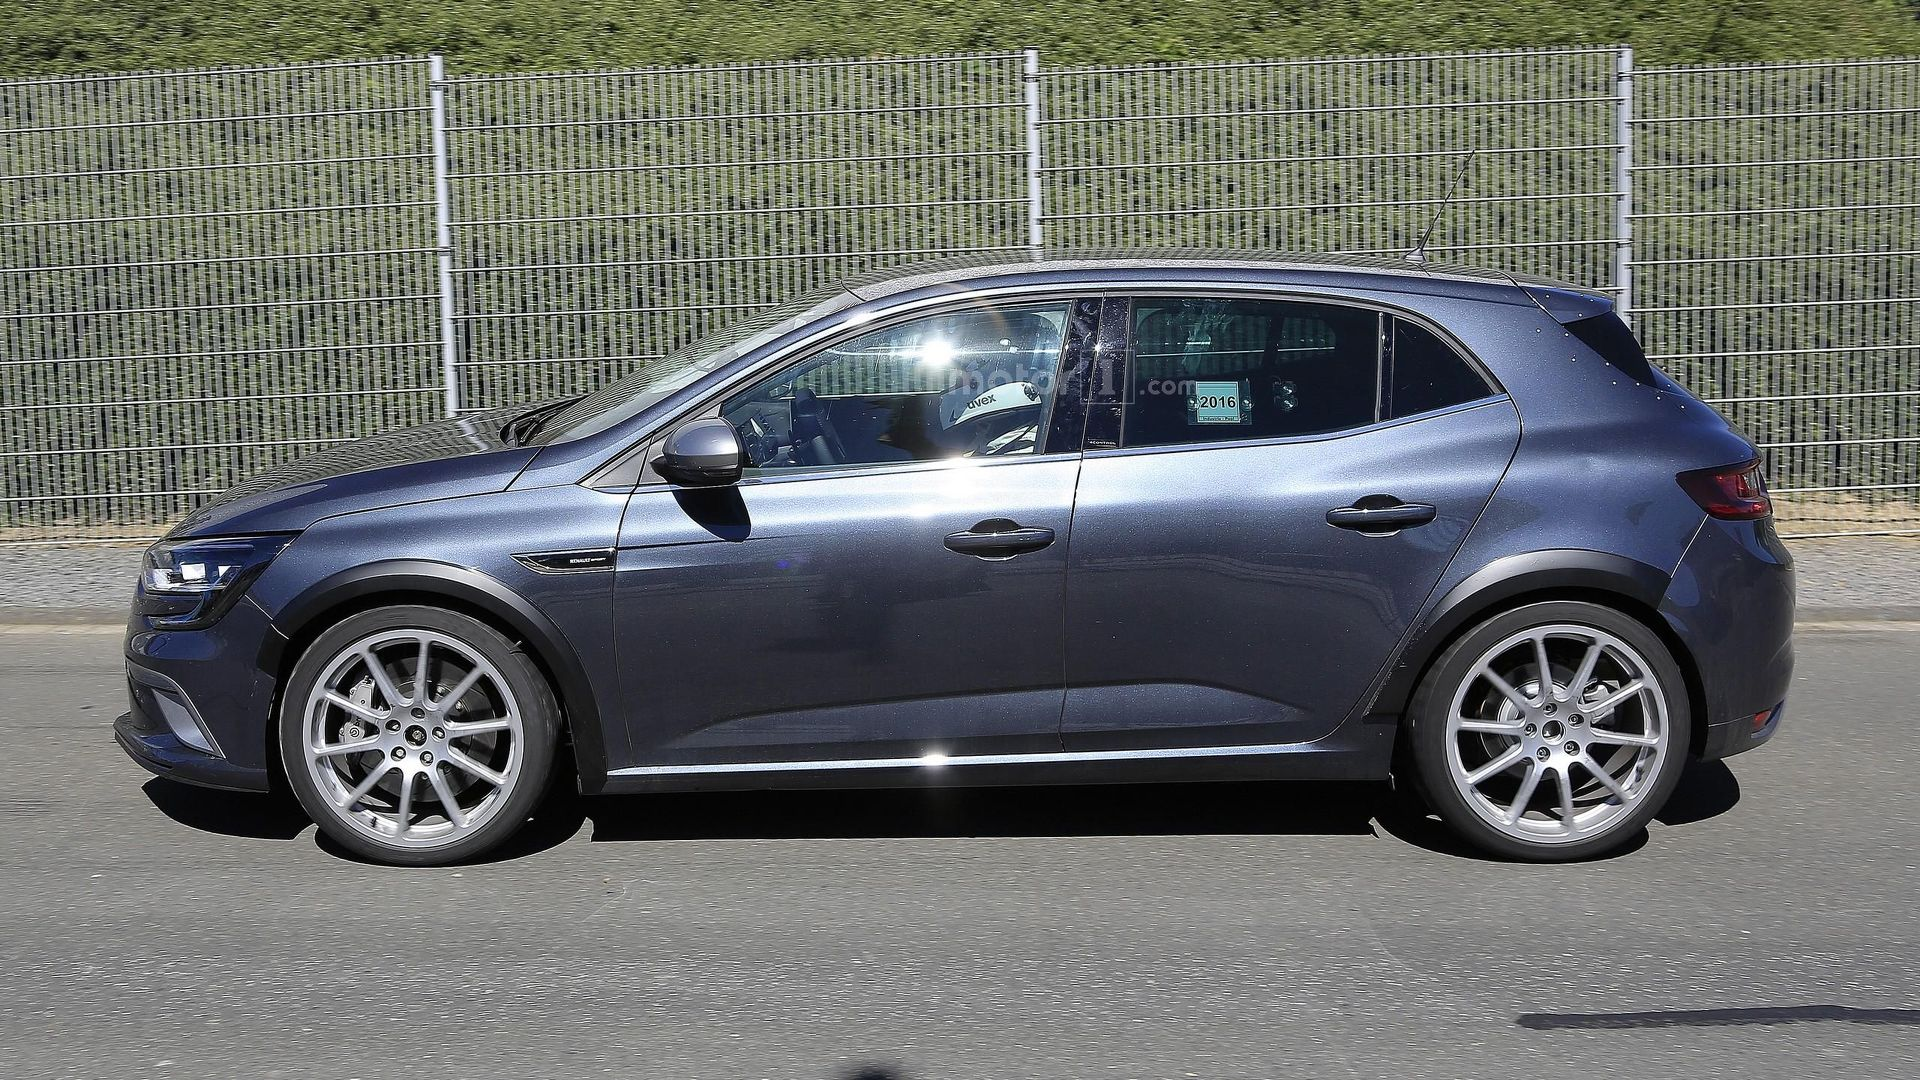 Renault Megane RS conceals its true identity in GT body